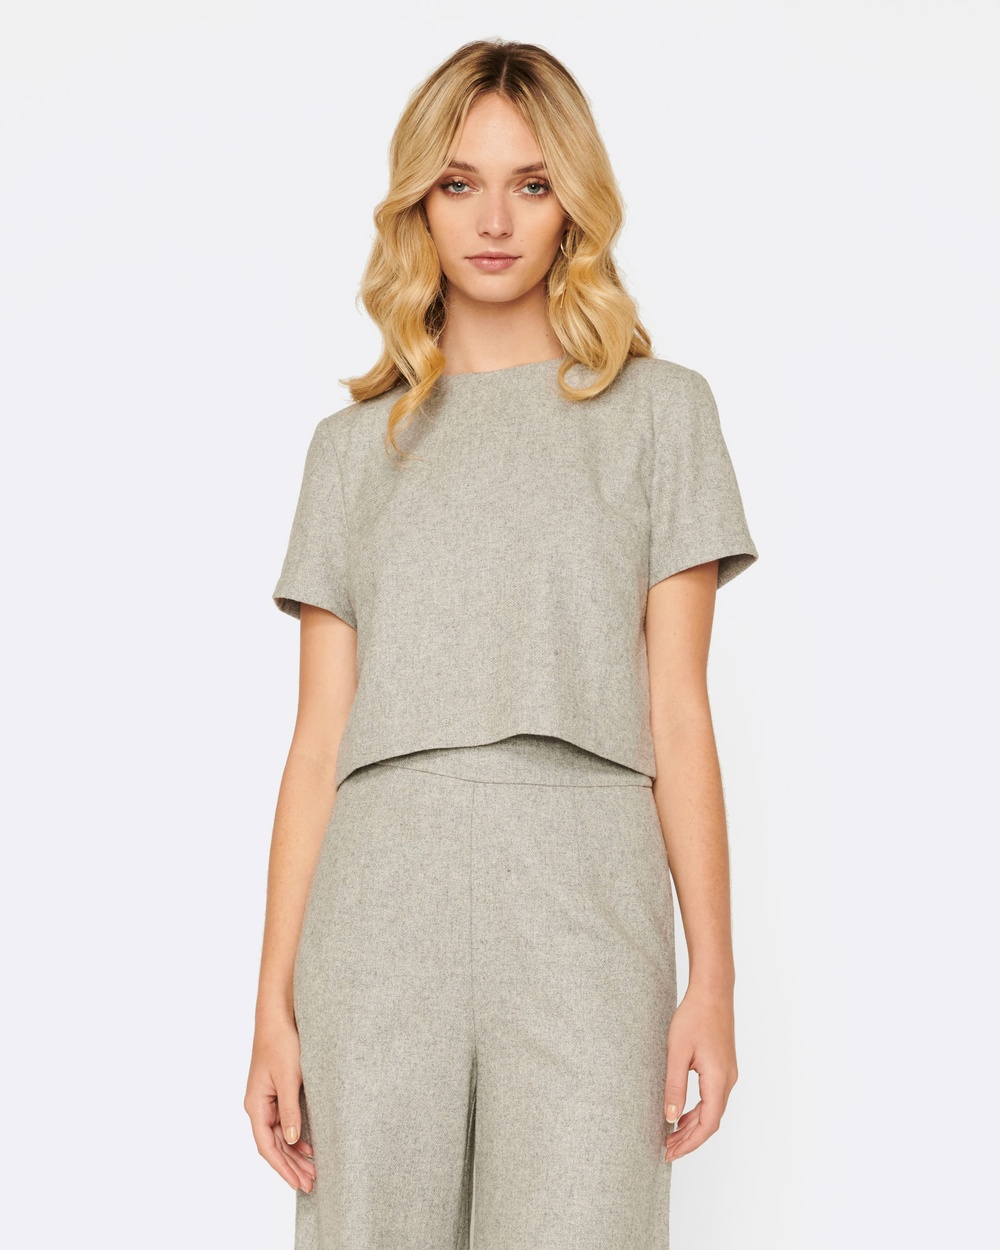 MVN The Lightkeepers Top Tops Grey The Lightkeepers Top